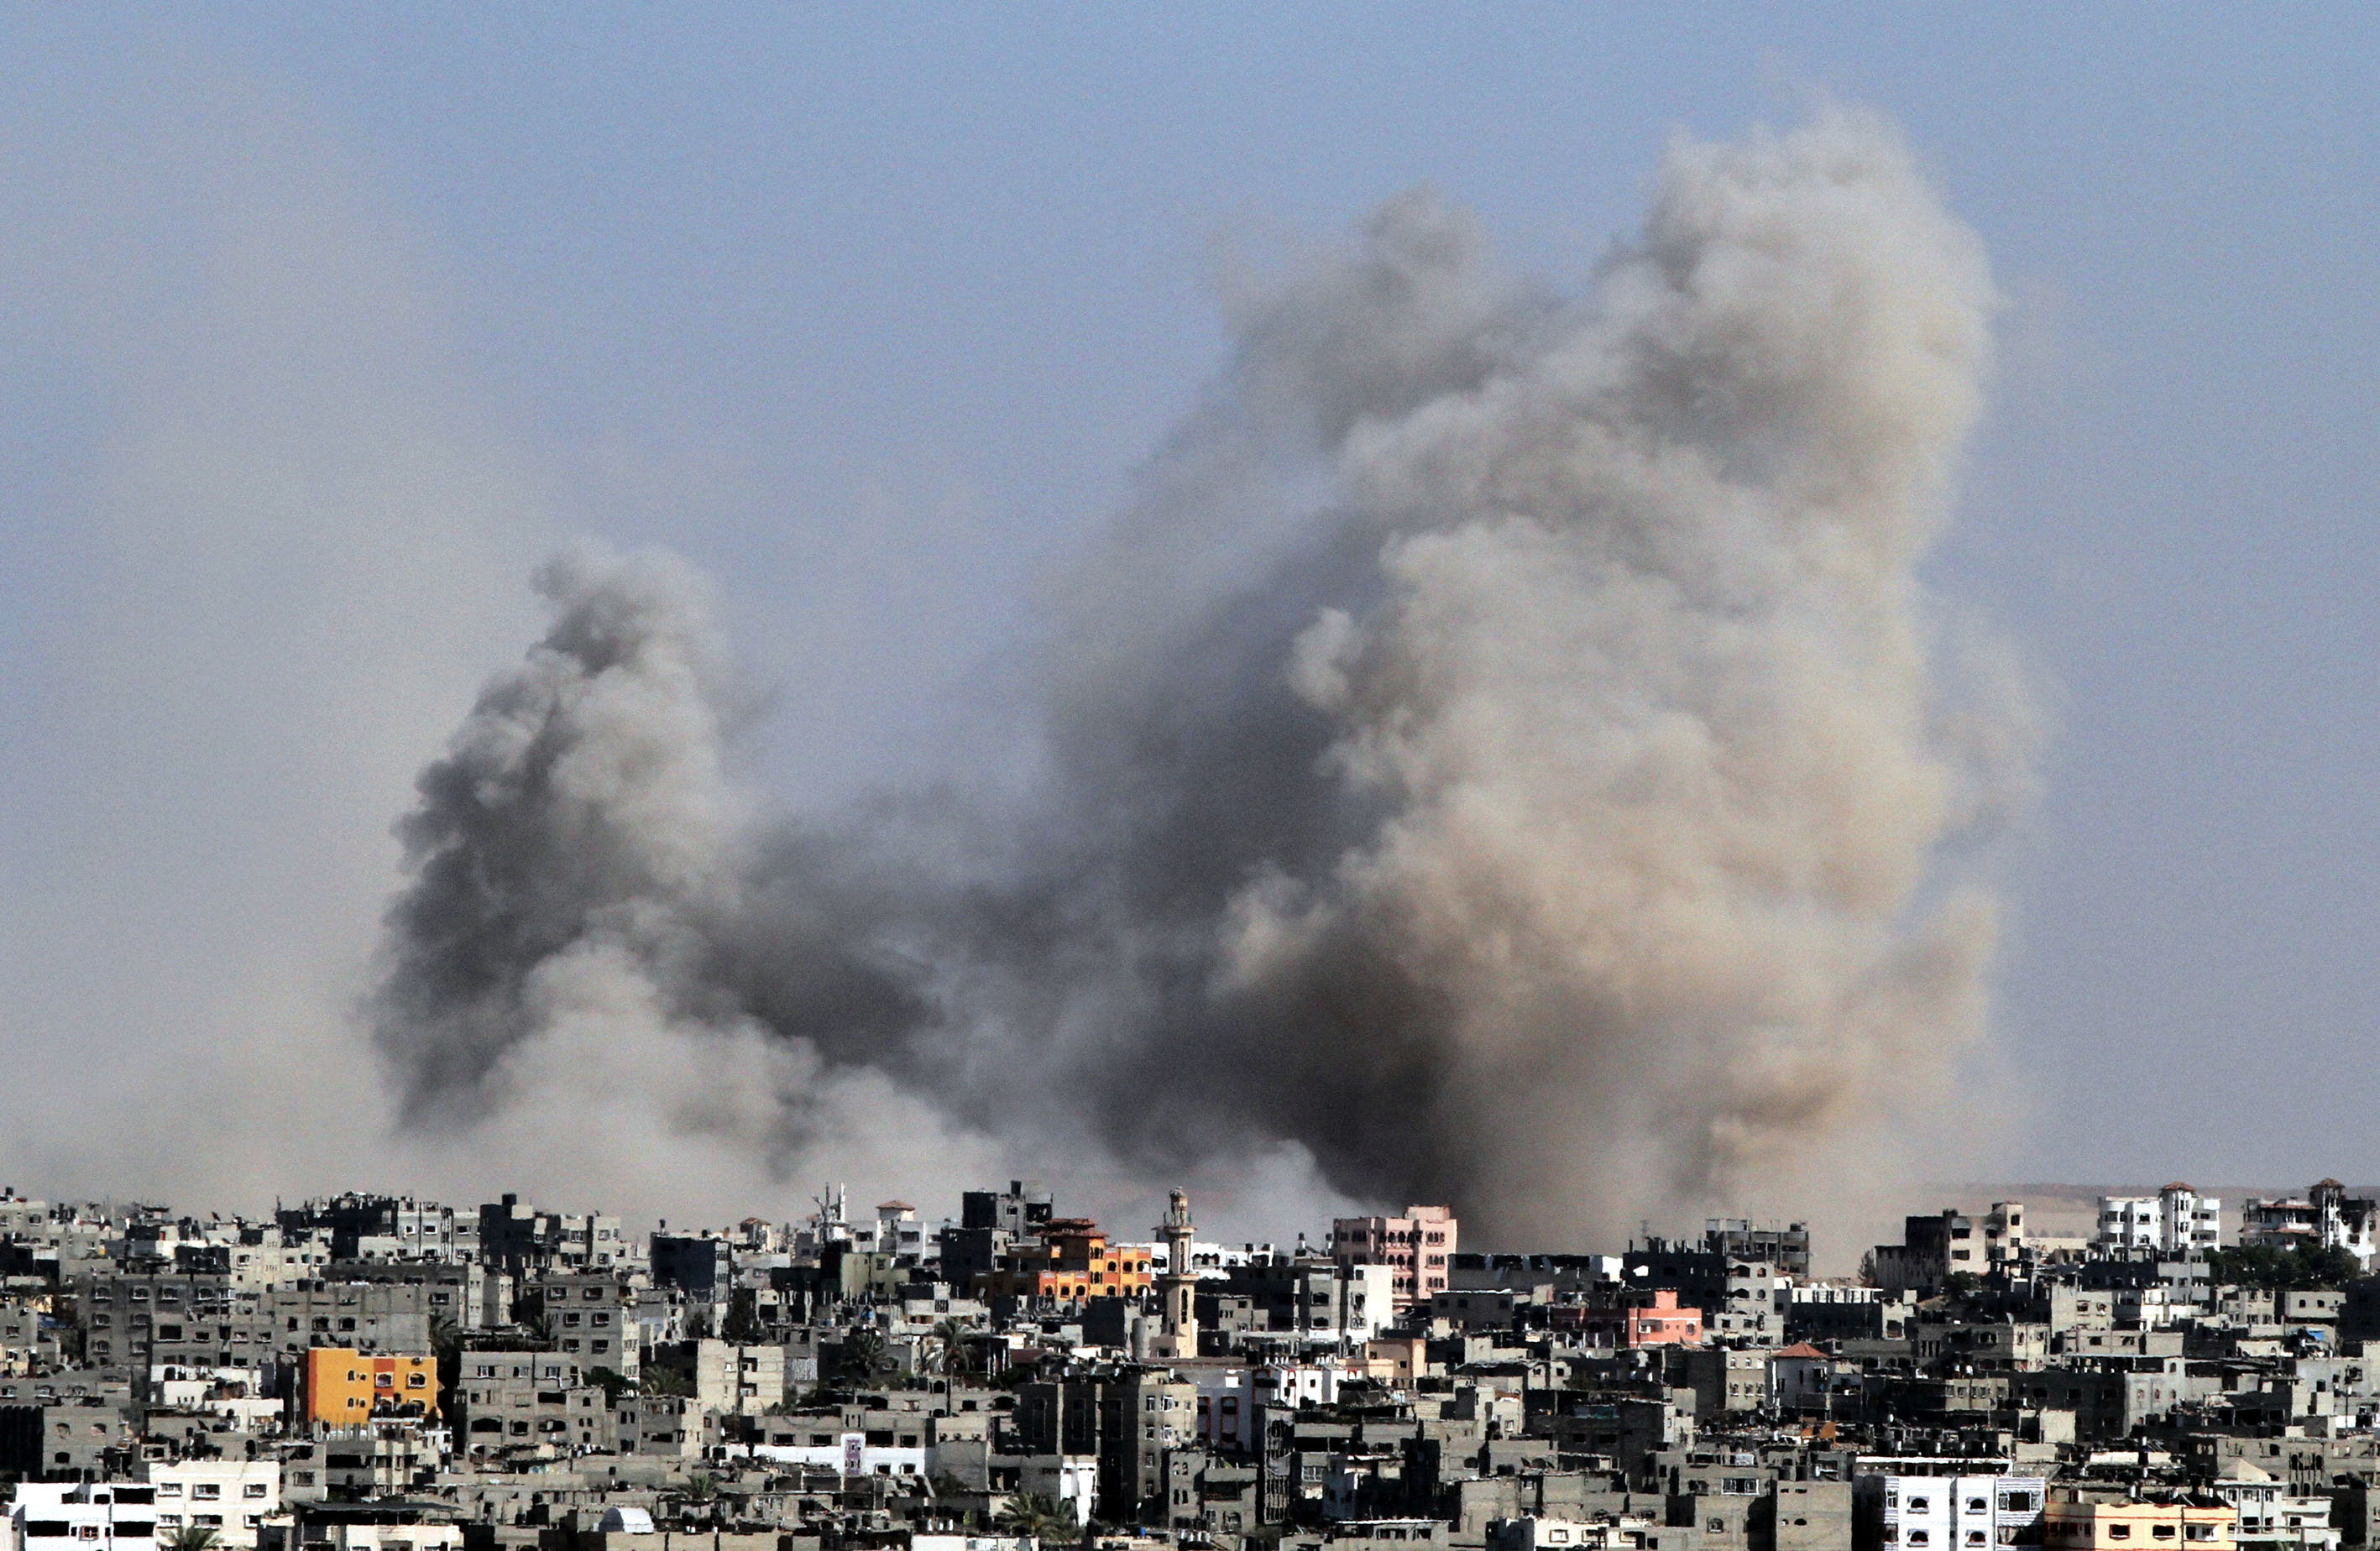 Smoke rises from a building following the Israeli attacks in Gaza City on July 25, 2014.